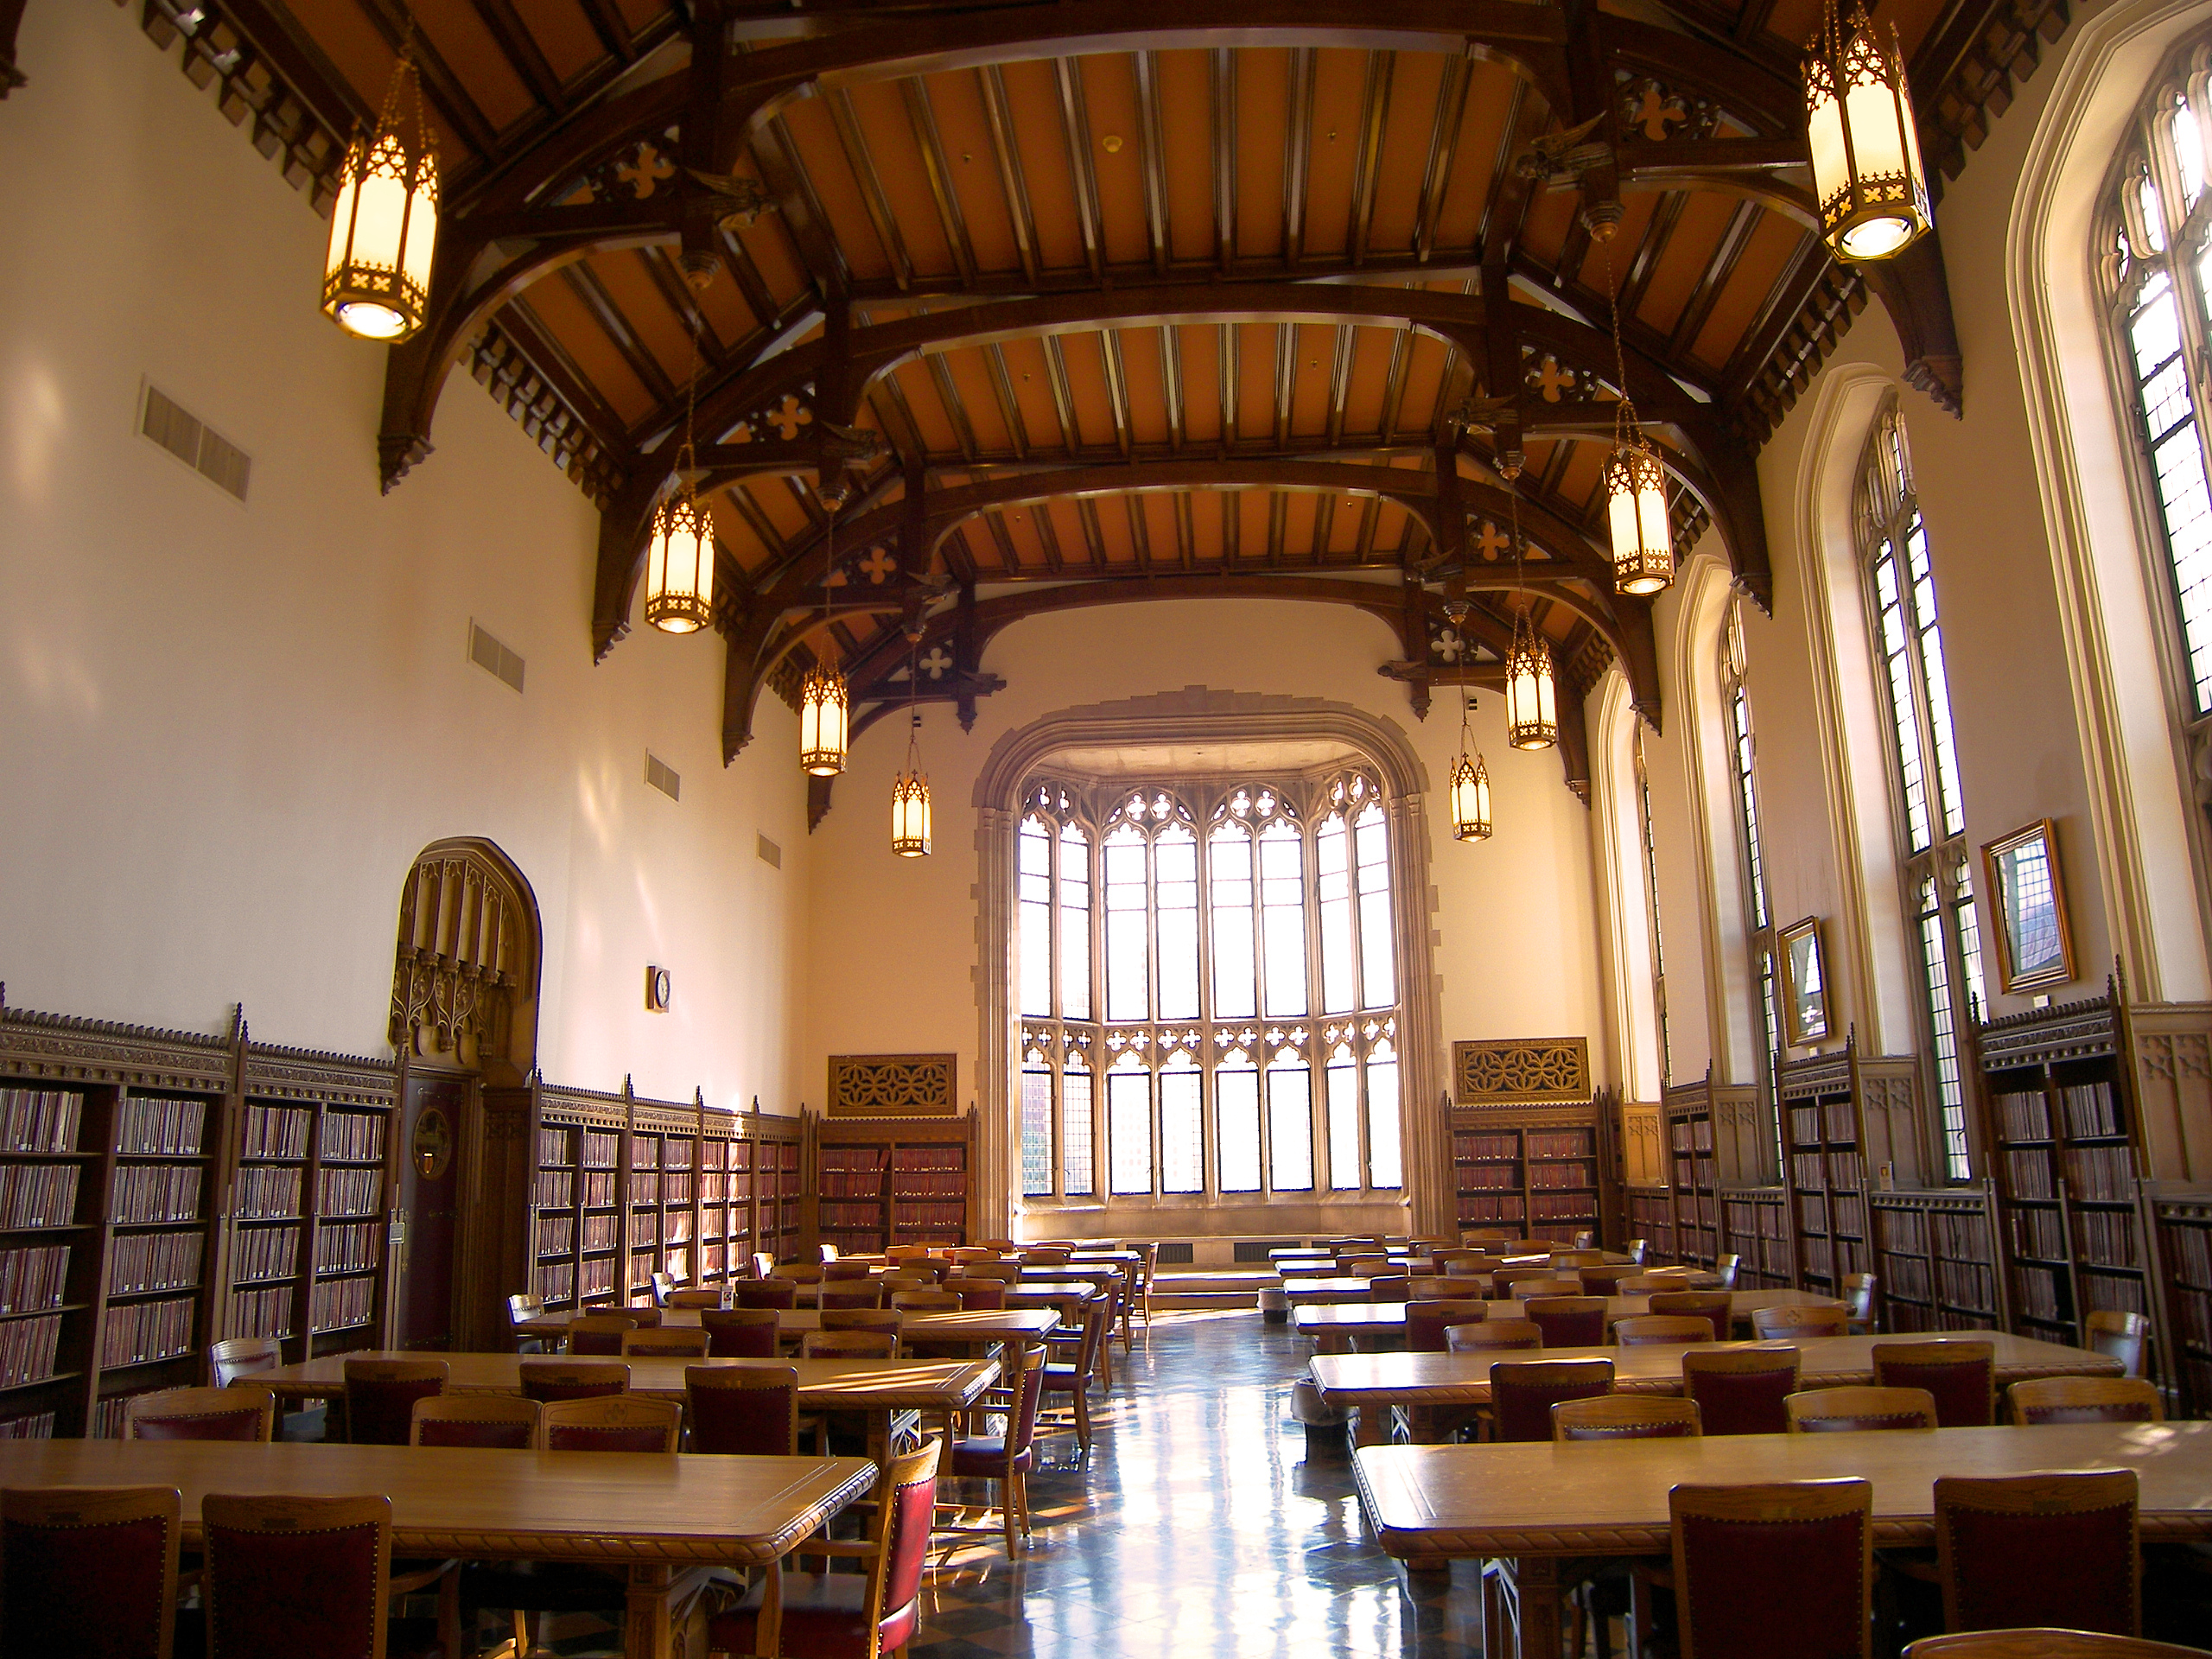 Uf Library West Study Rooms Reservation